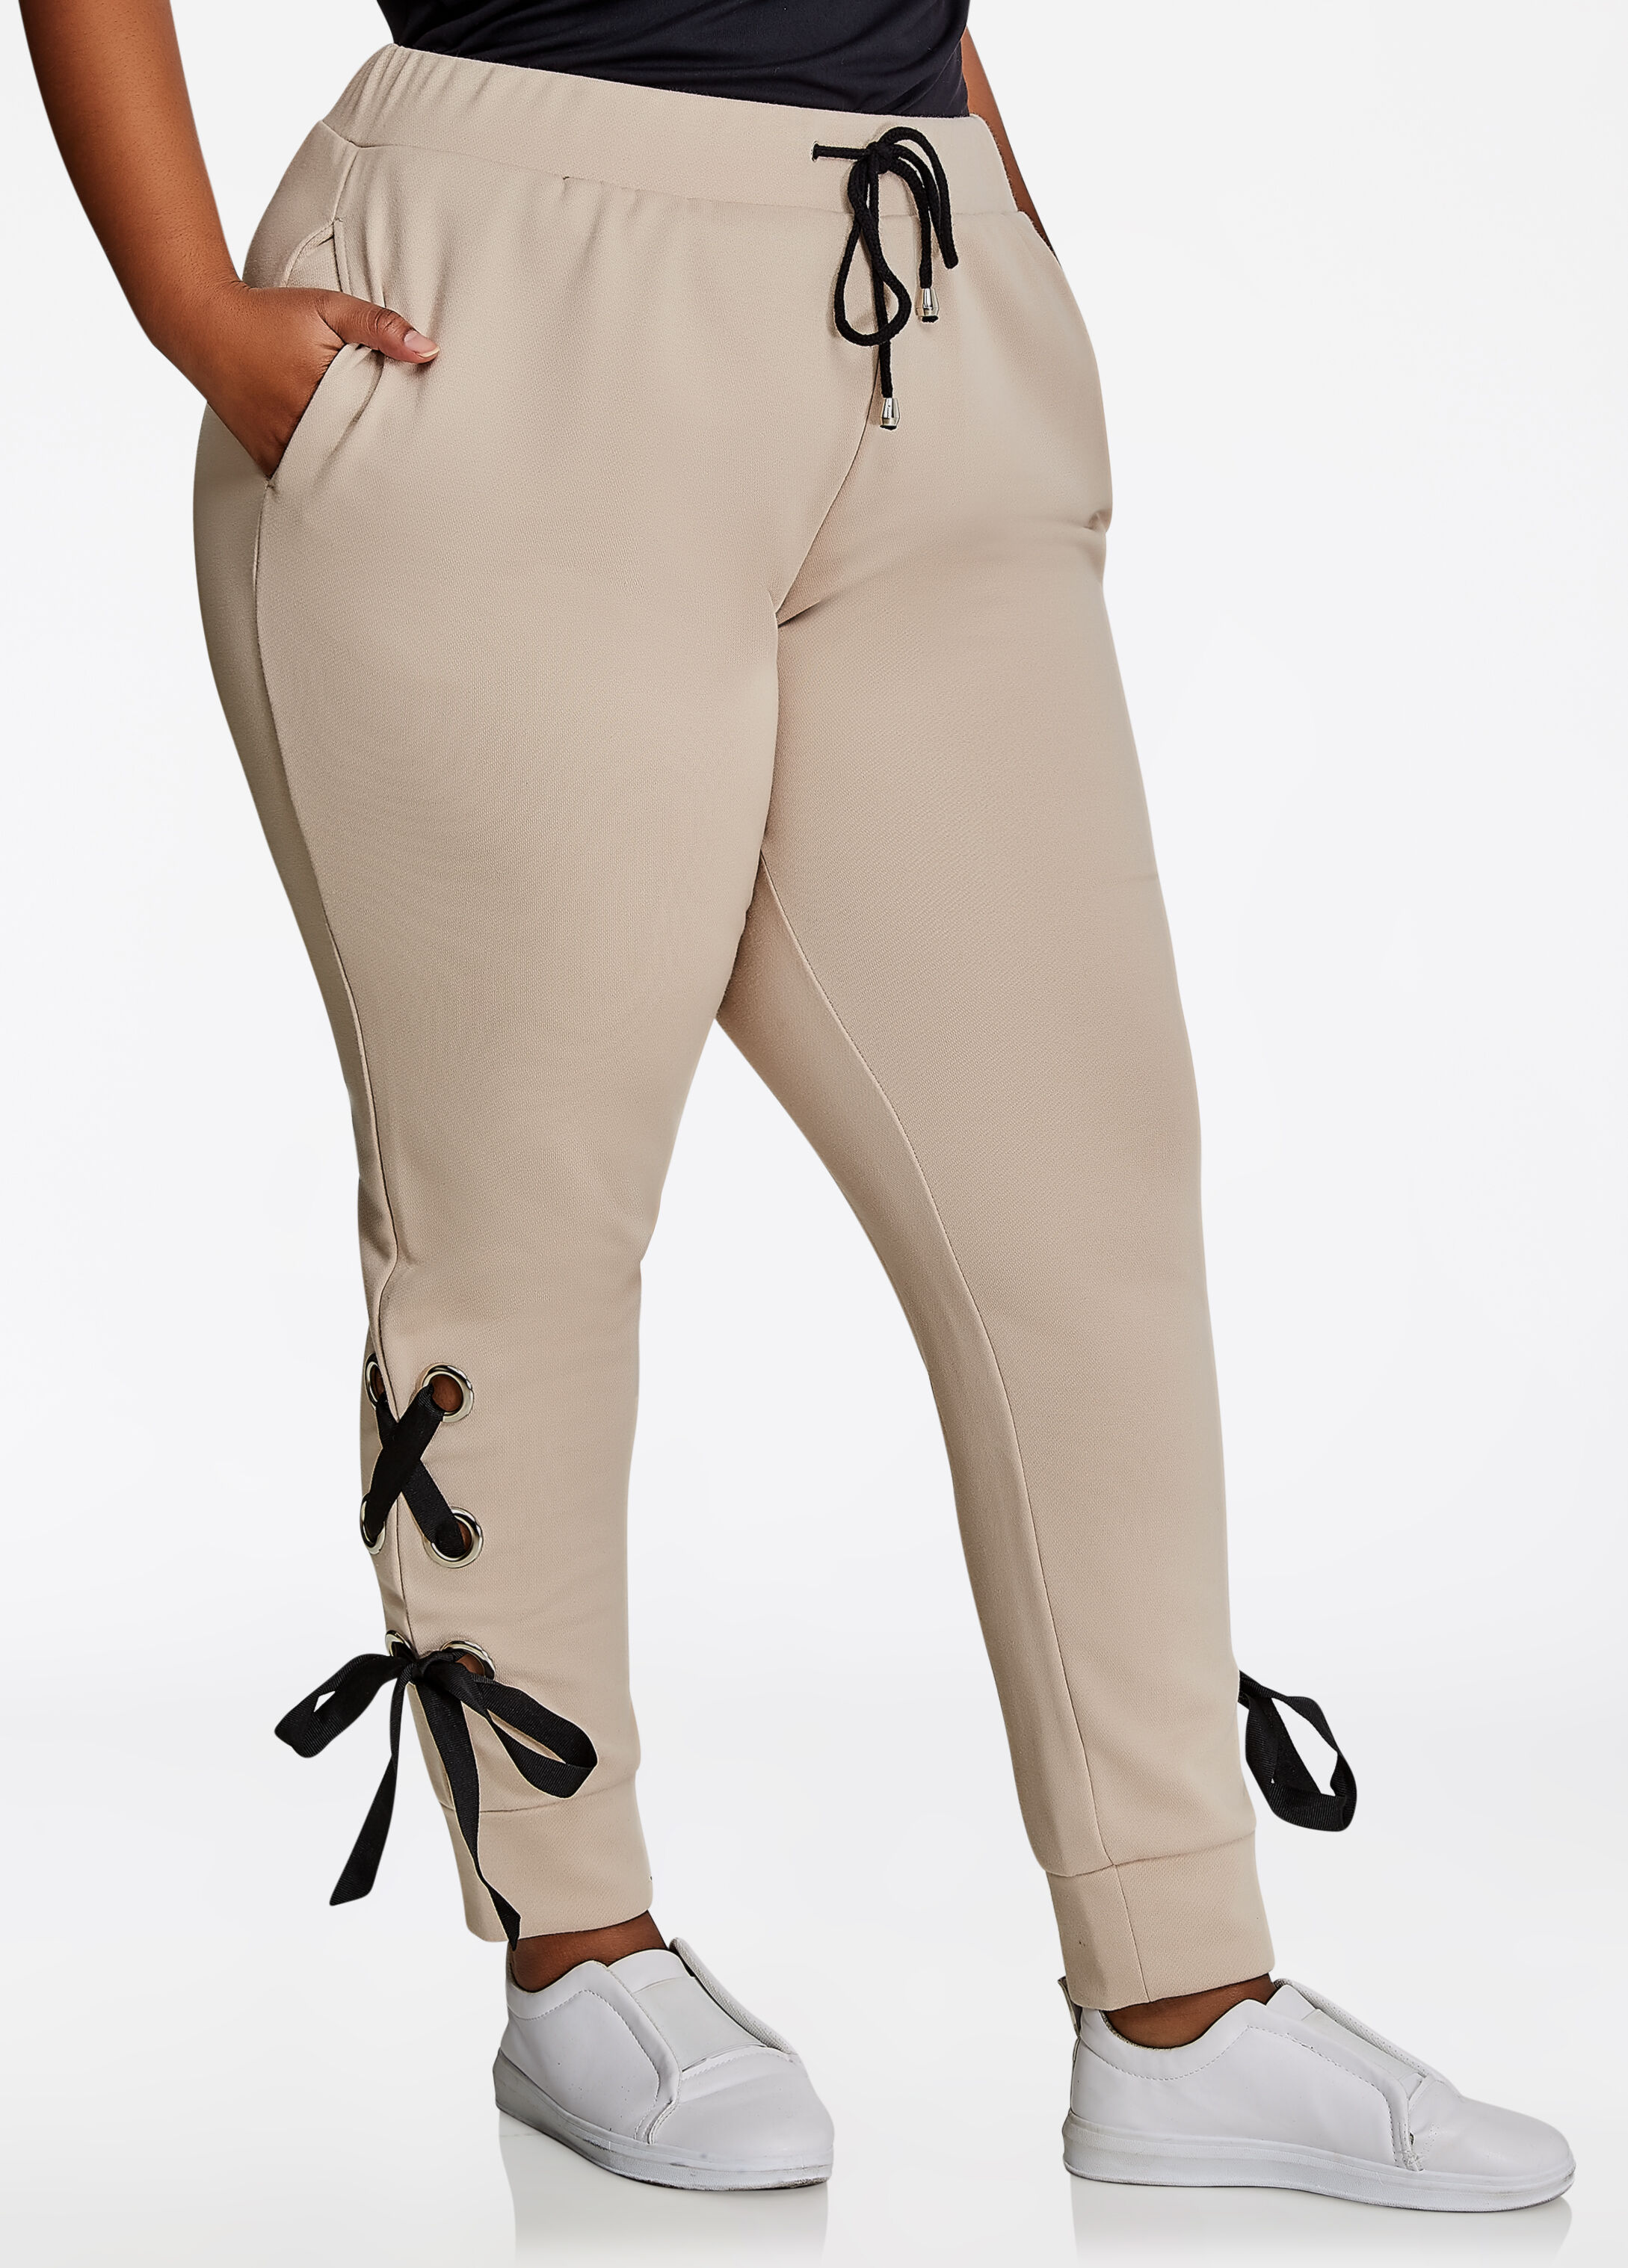 Grommet Lace Up Jogger